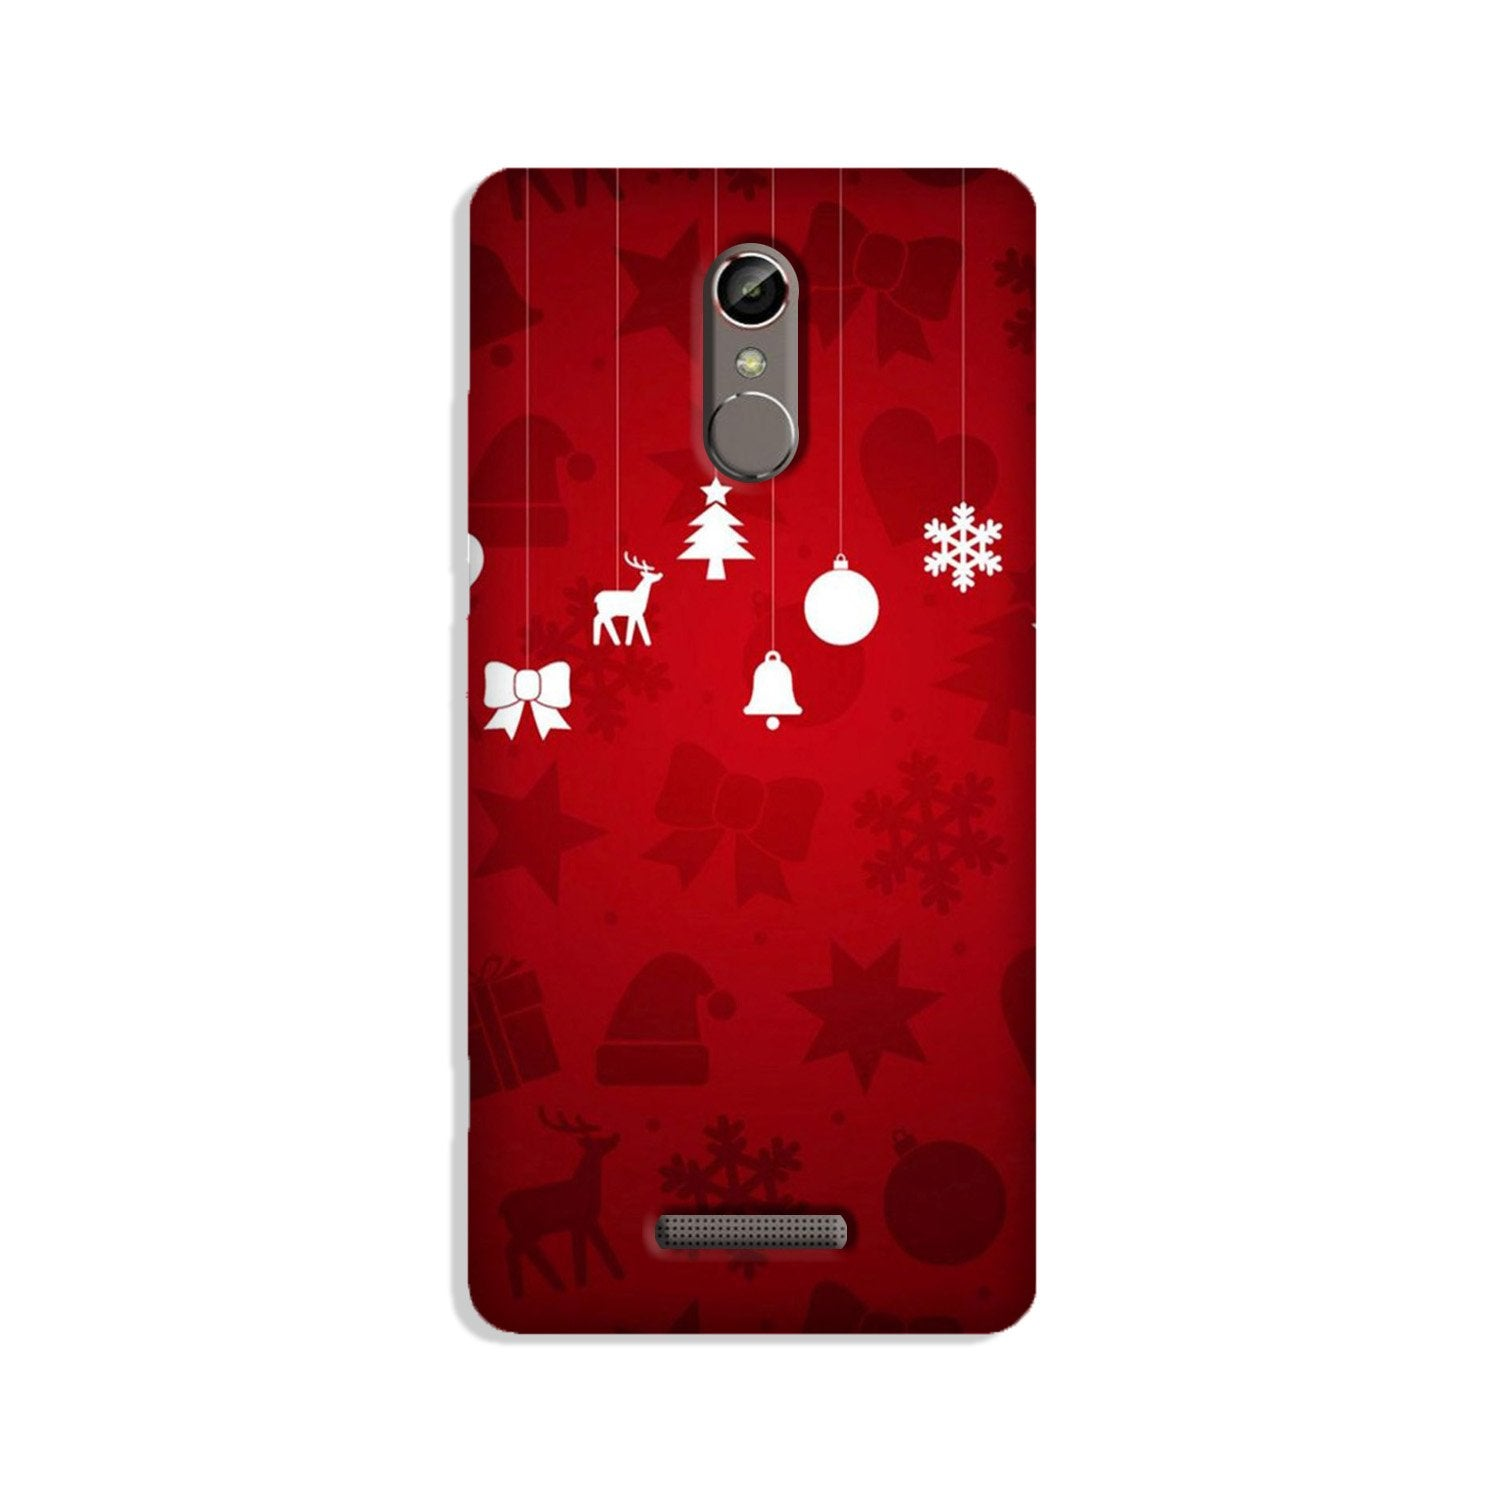 Christmas Case for Redmi Note 3